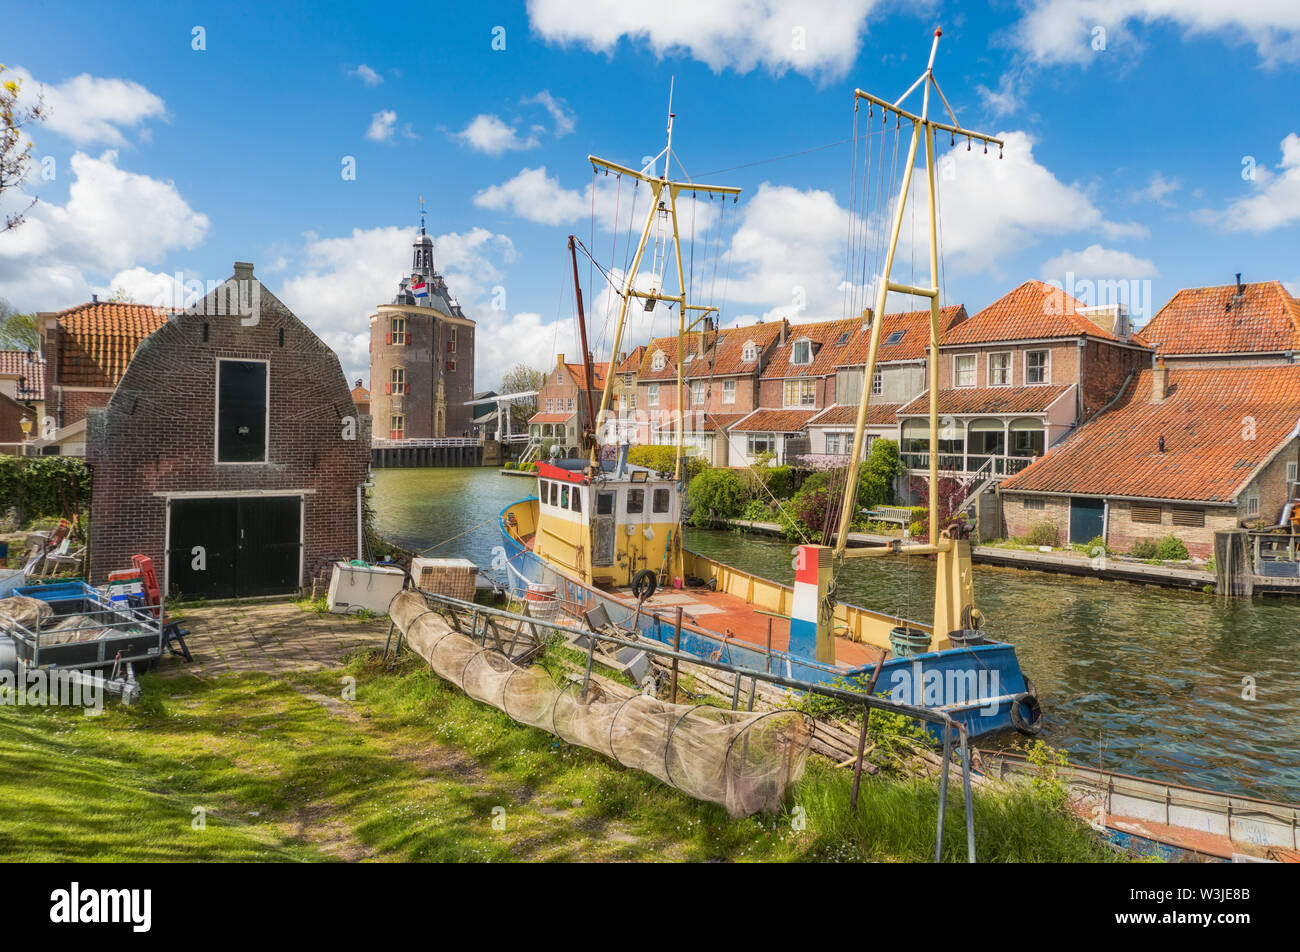 Fishing boat in Enkhuizen in the Netherlands with the historic city gate (Drommedaris) in the background. - Stock Image